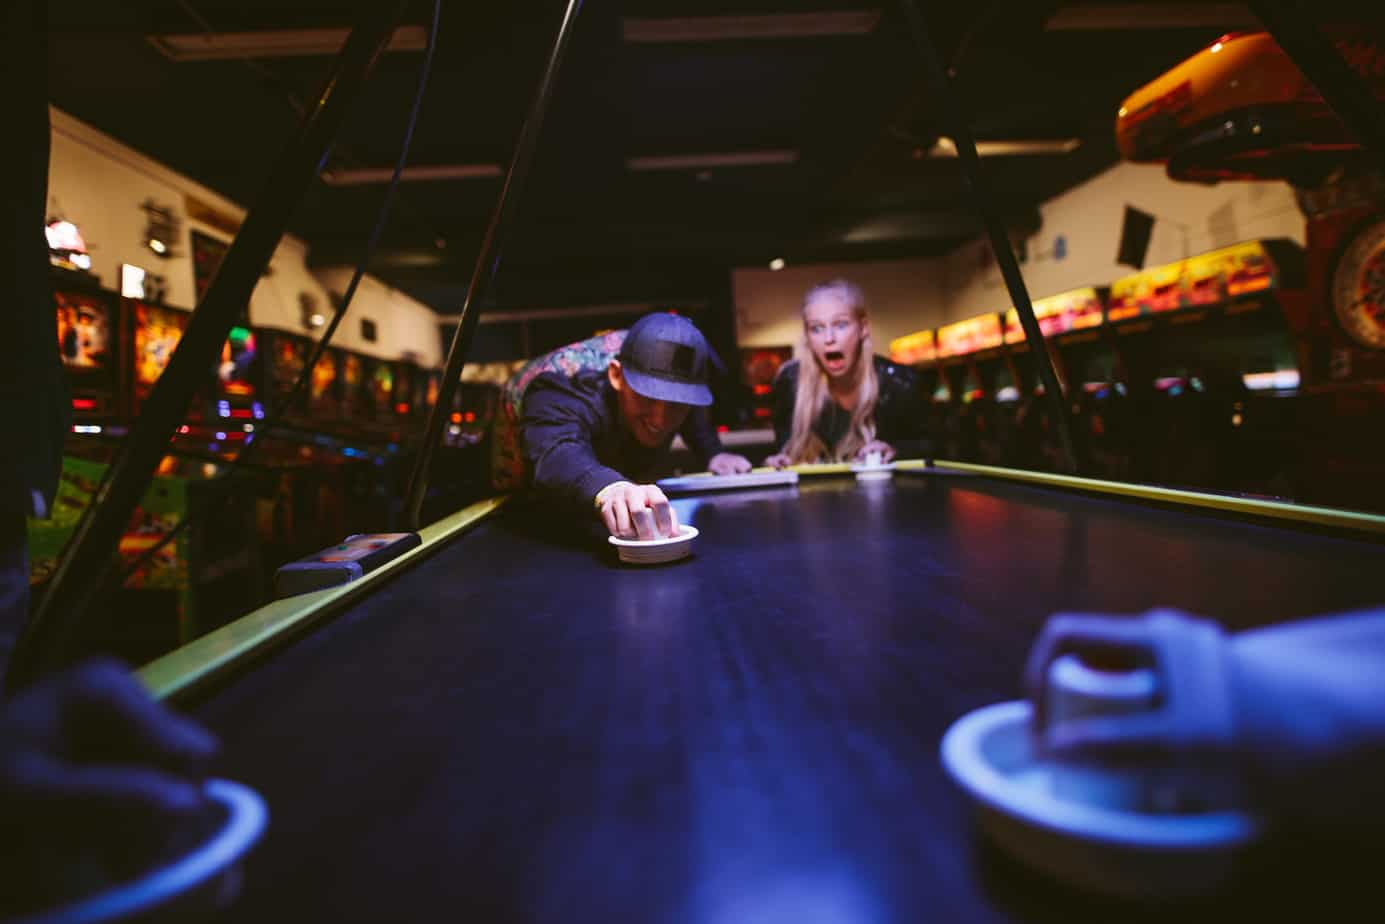 The Best Air Hockey Tricks to Impress Your Friends With